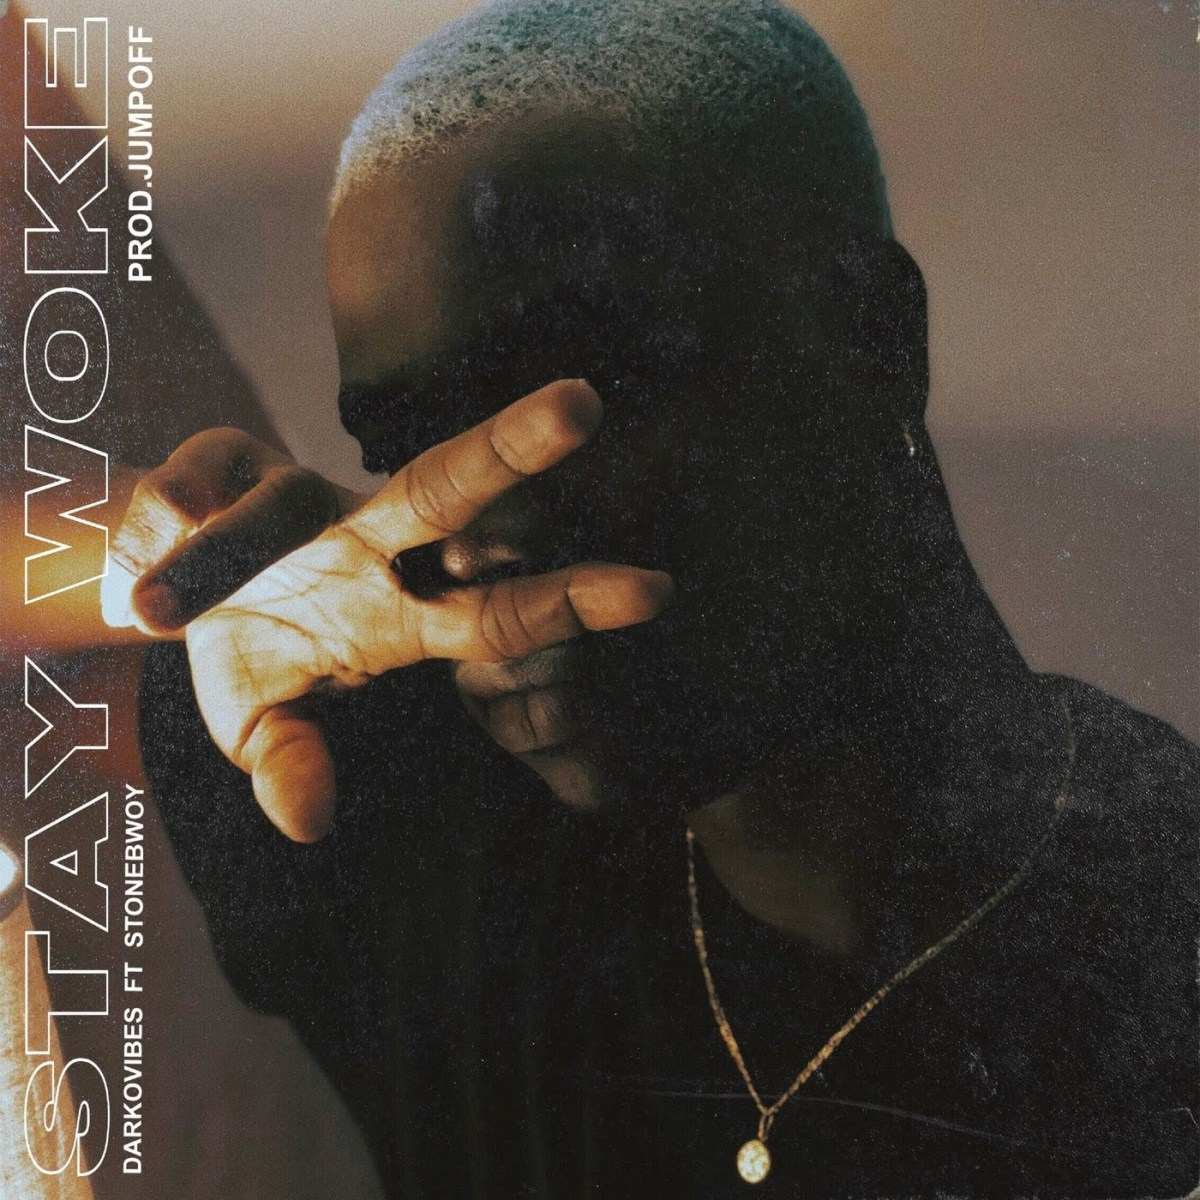 Darkovibes feat. Stonebwoy - Stay Woke (Prod. by JumpOff)